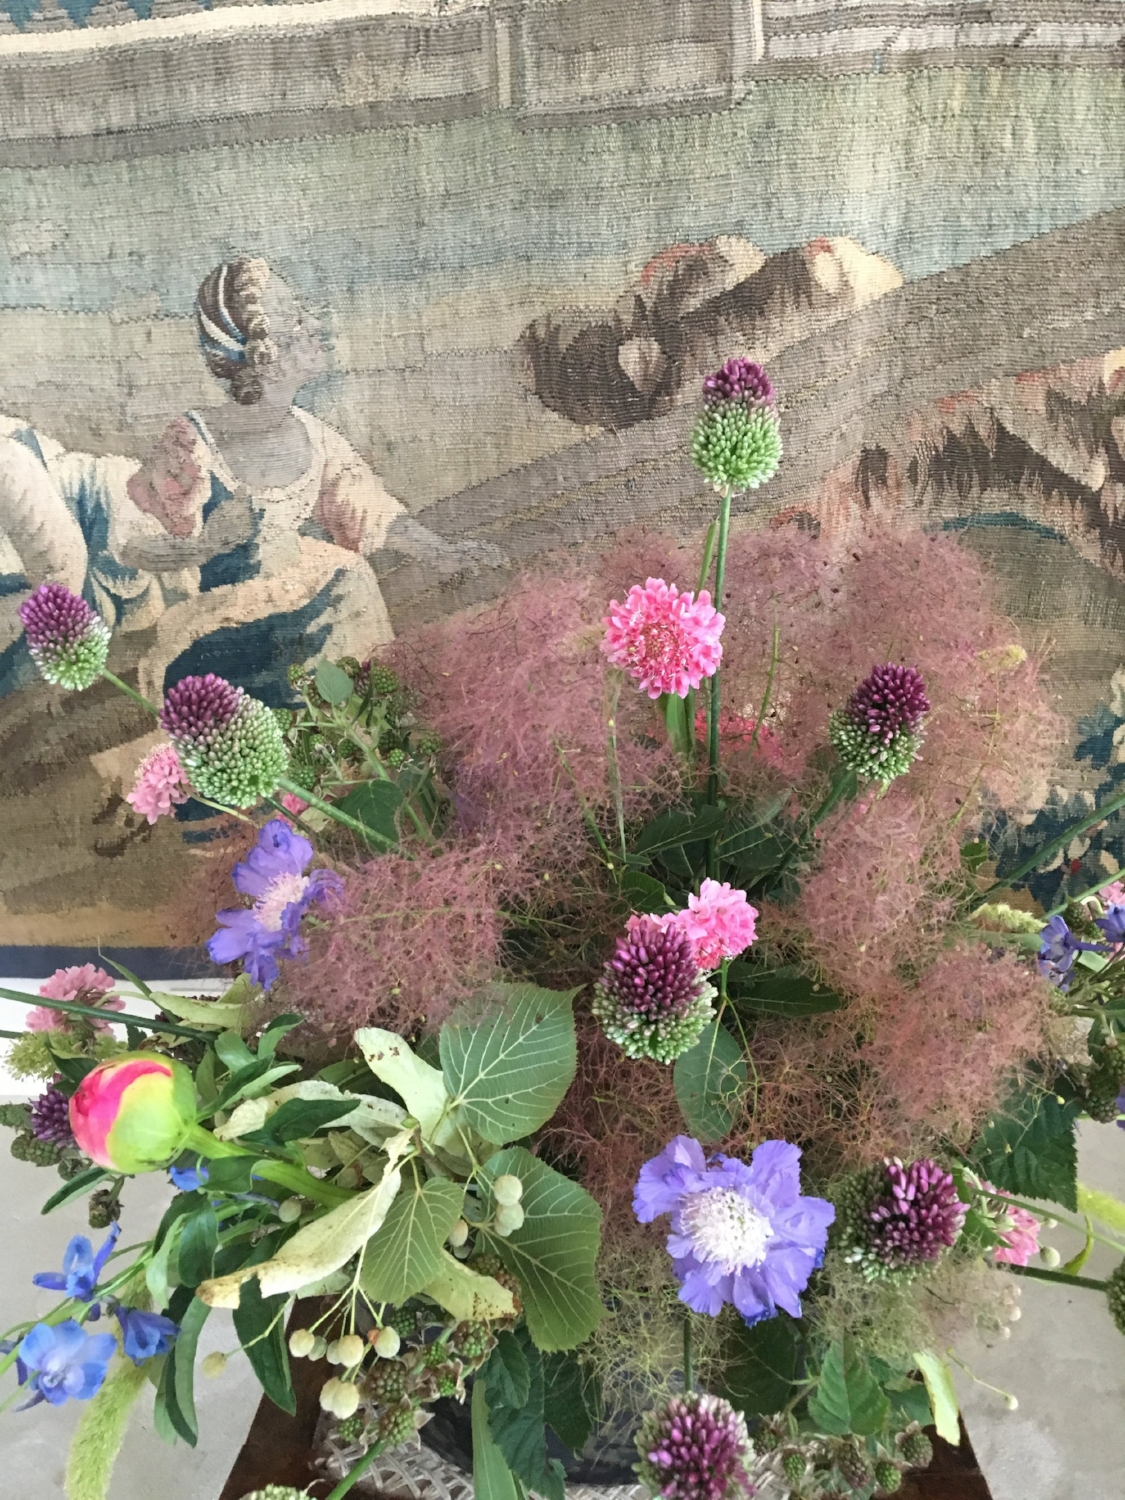 Paeonia, Scabiosa, Delphinium, Allium, Cotinus coggygria, Ruscus, Tilia - Floral installation & Ceramic by Horty Poetry - Tapestry 18th century (Private collection, Belgium) - restoration by Christine Hermans, Textile Designer - July 2018 - Brussels